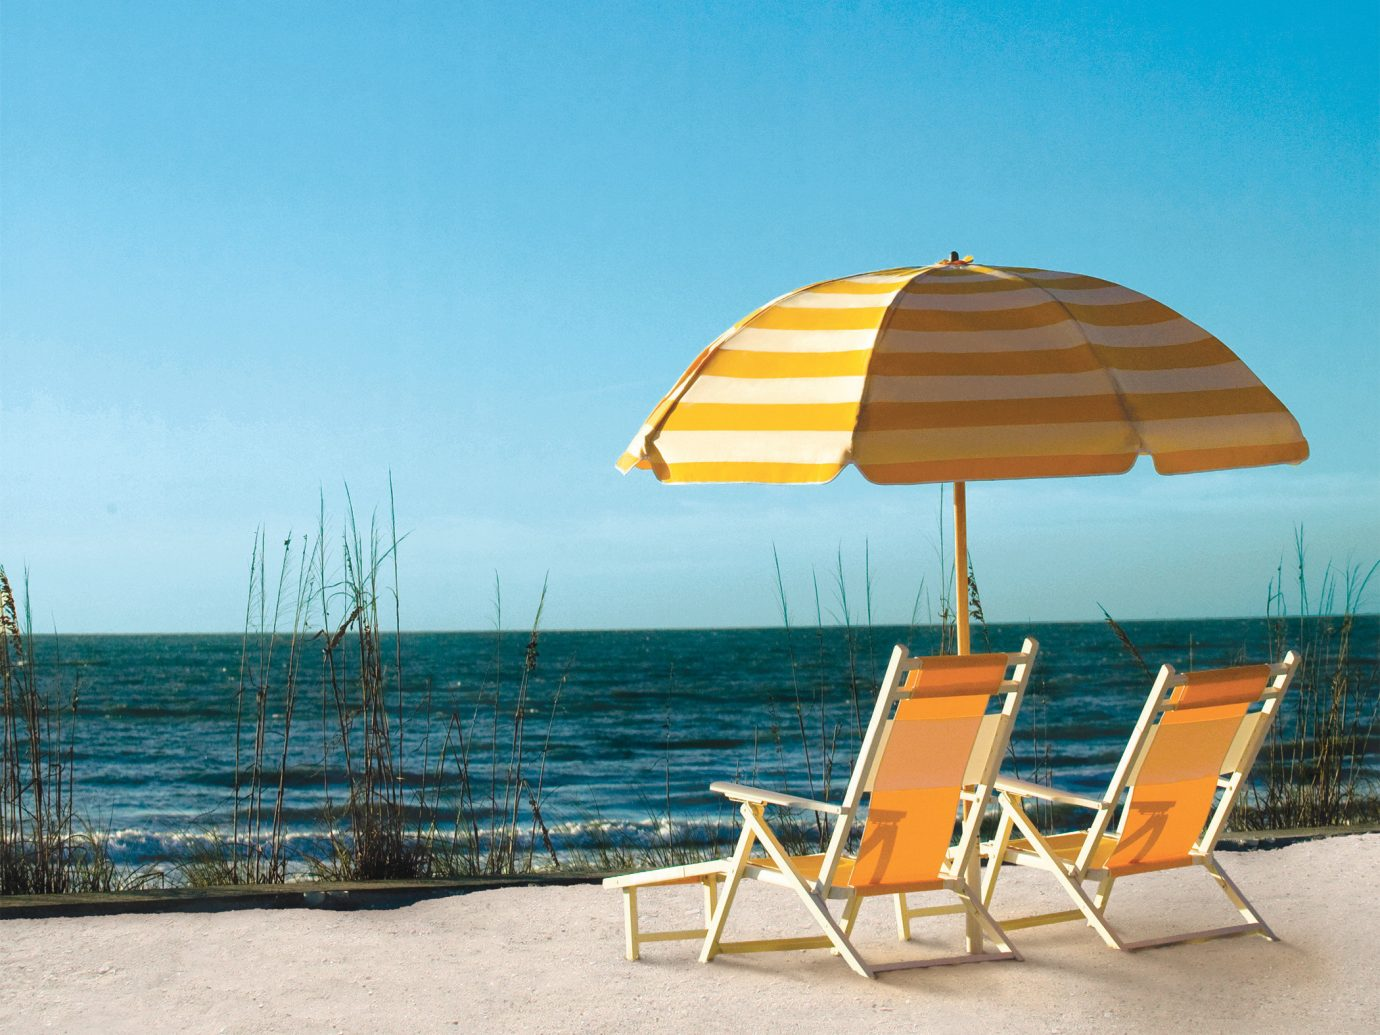 Hotels isolation lounge chairs private relaxation remote sand Secret Getaways Trip Ideas sky outdoor chair umbrella ground leisure Beach Sea vacation Ocean seat shore set day